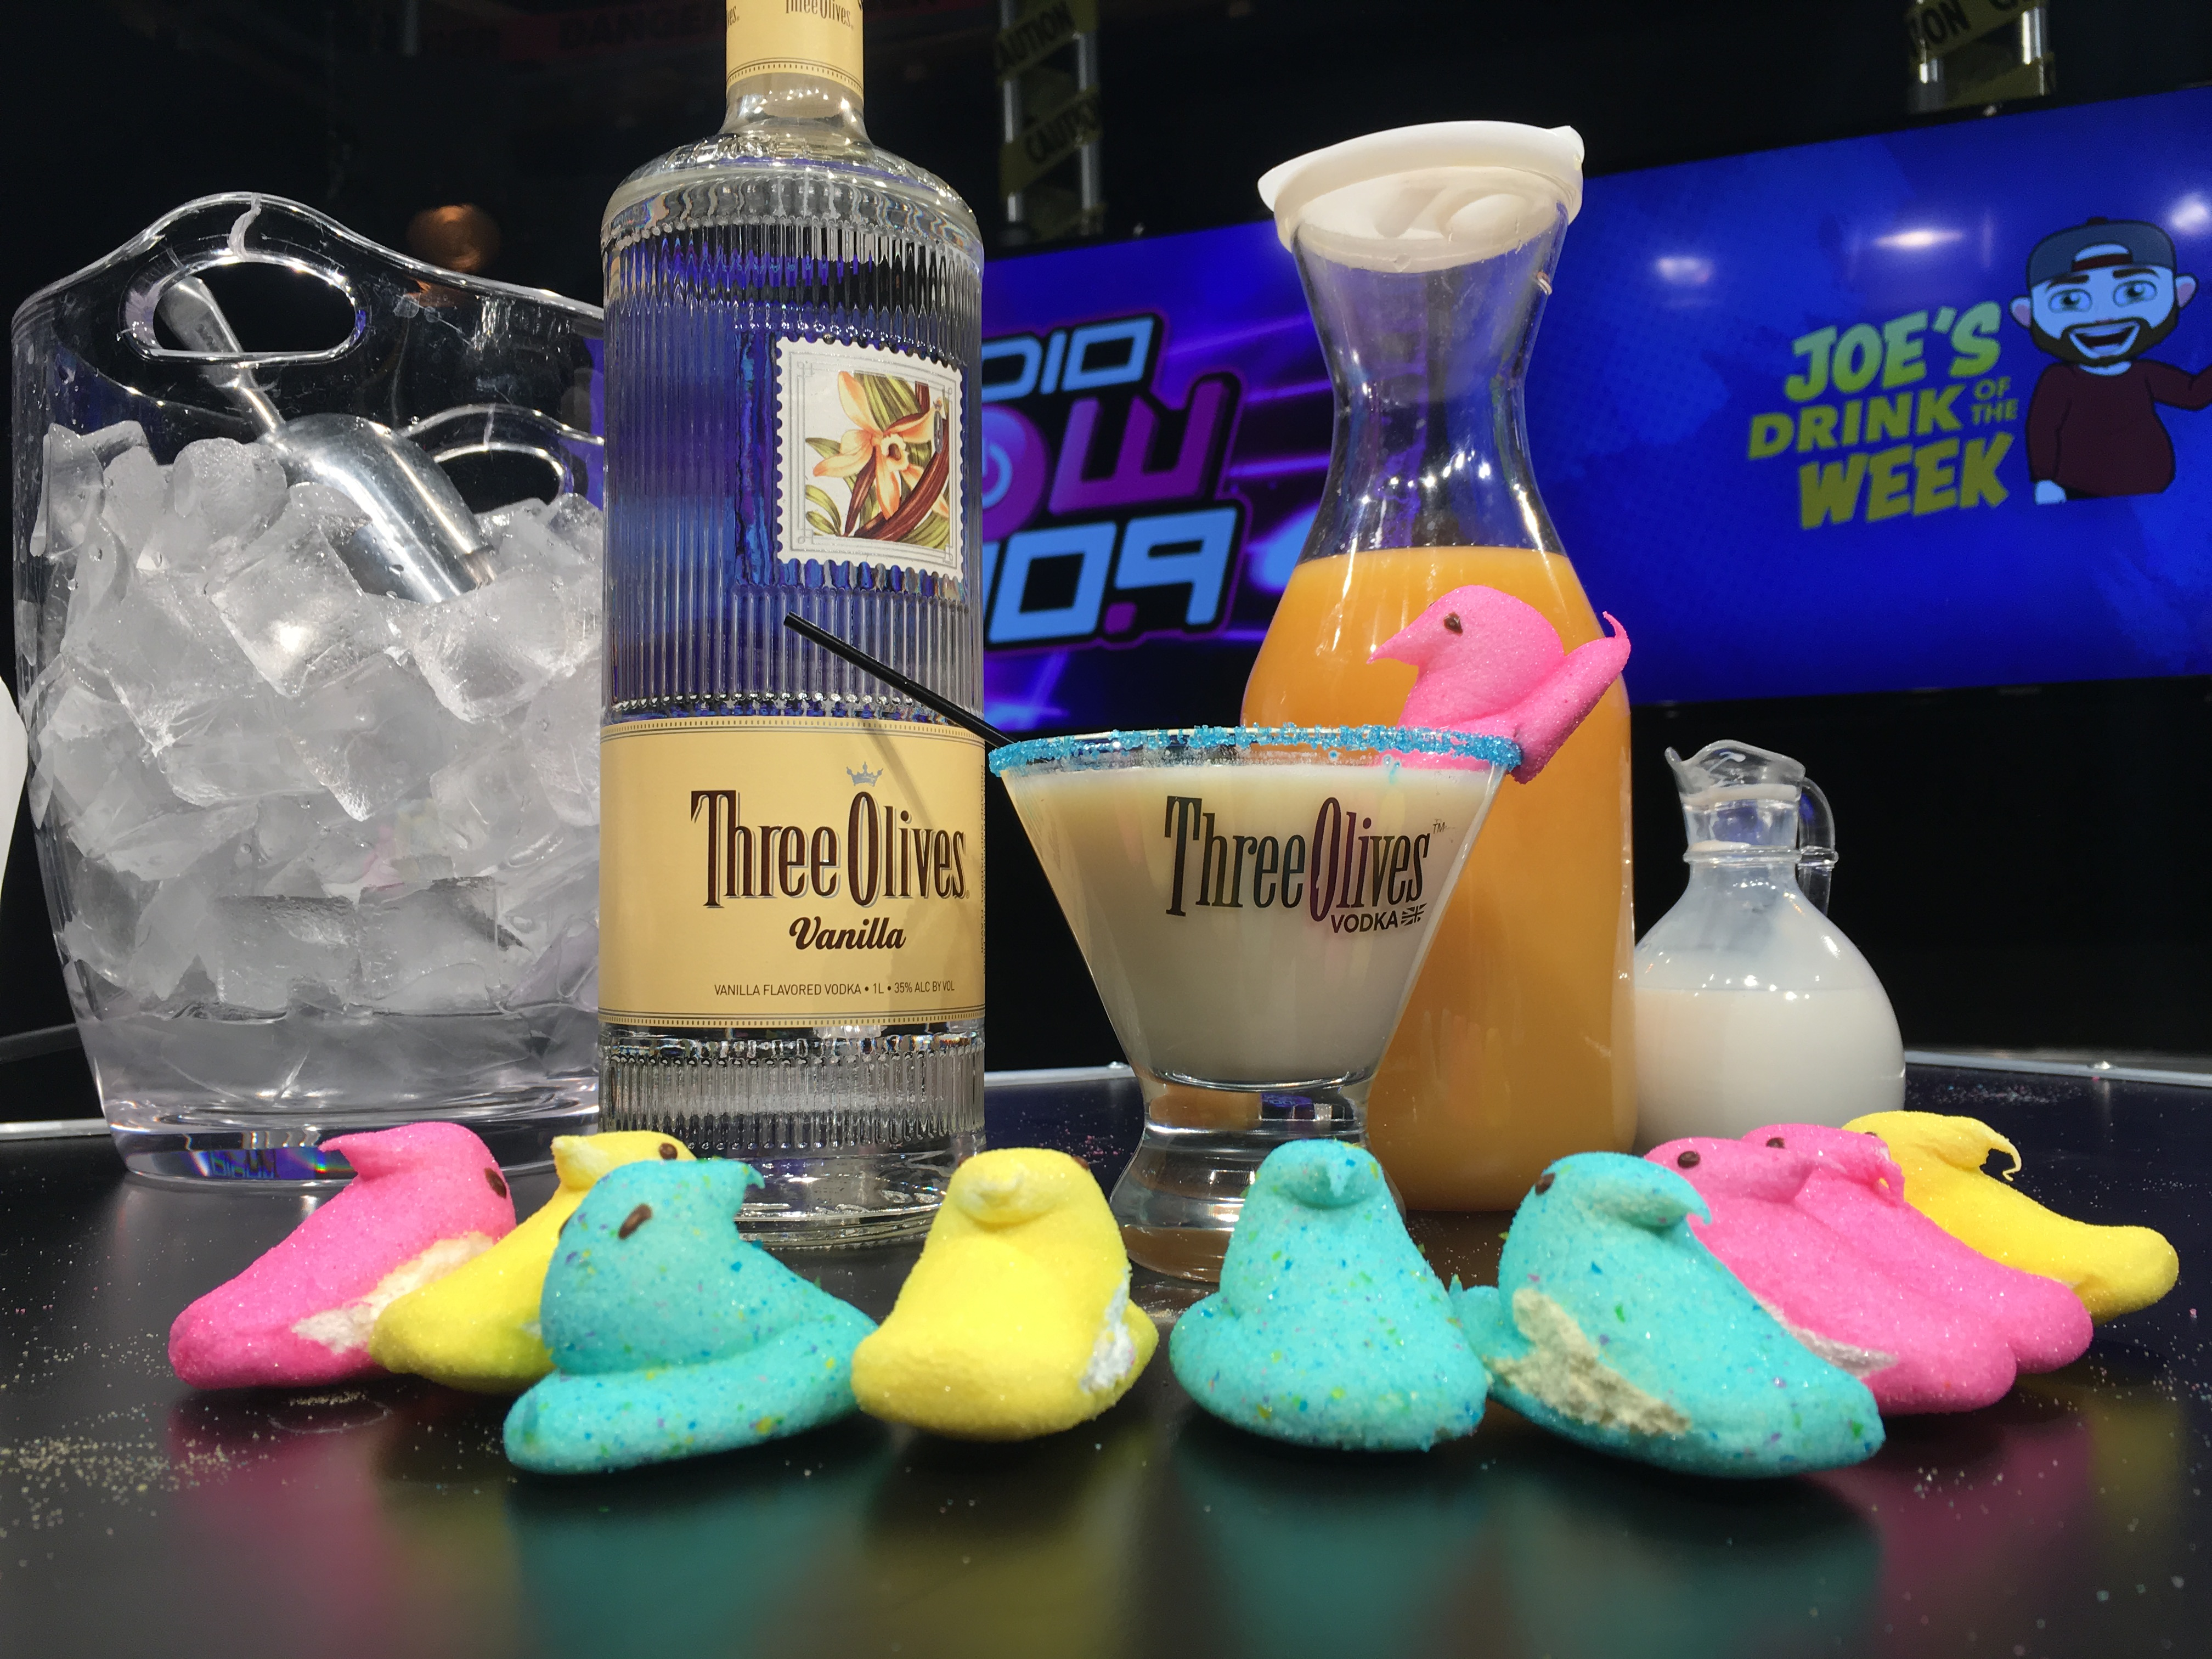 Joe's Drink of the Week: The Peeptini